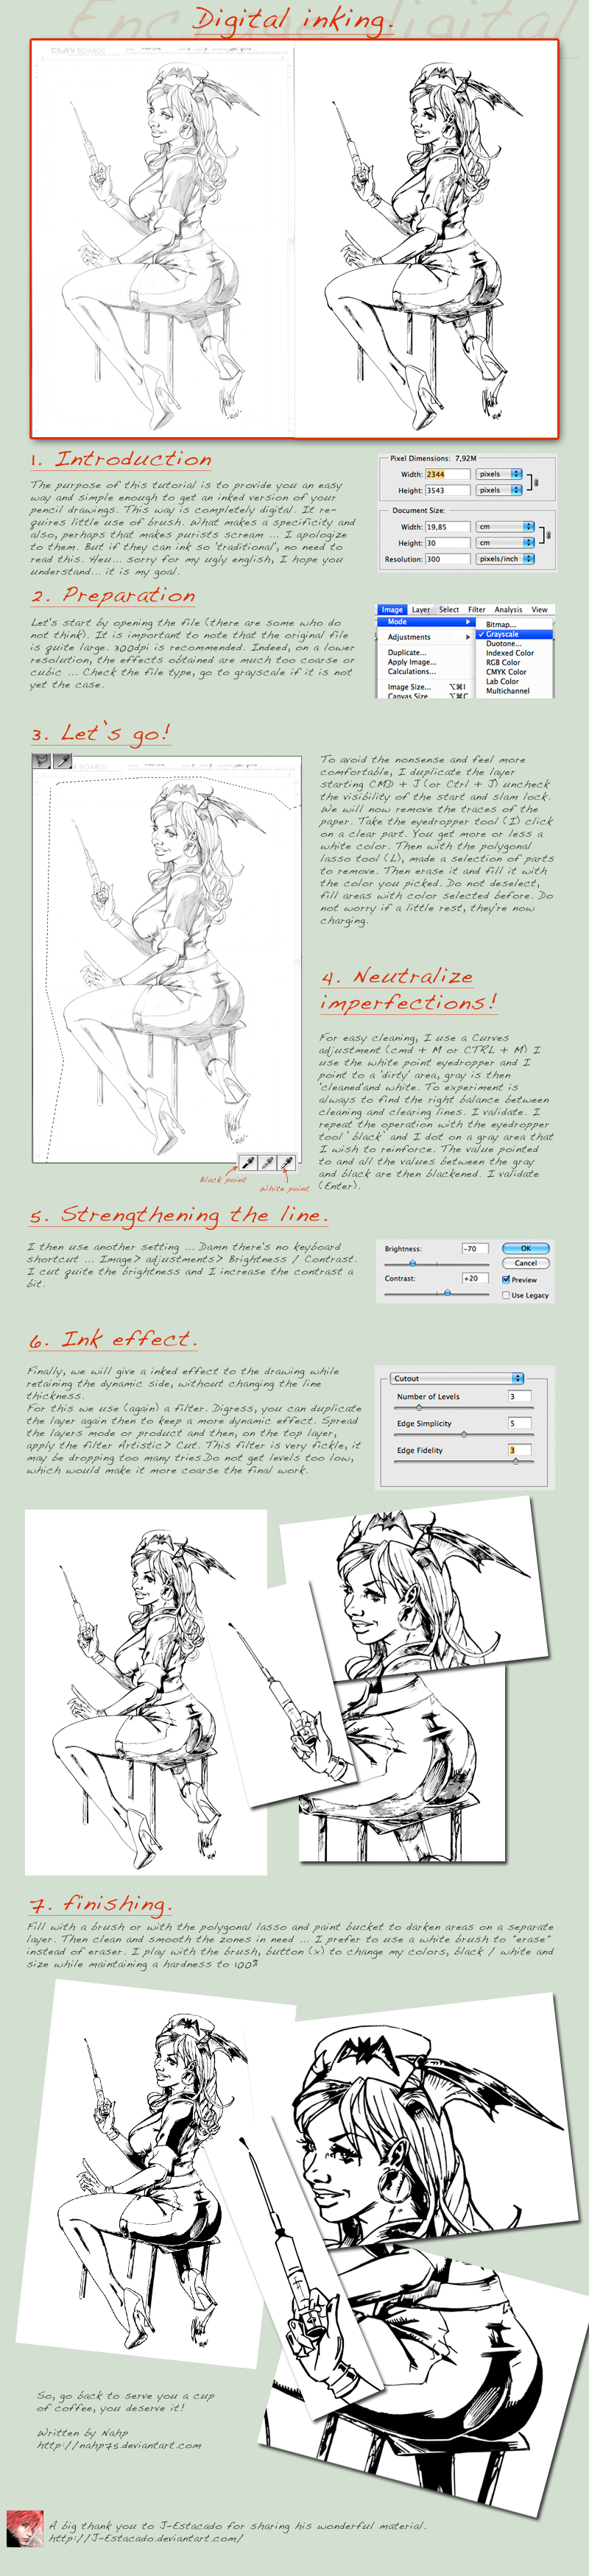 Tutorial - digital inking by nahp75